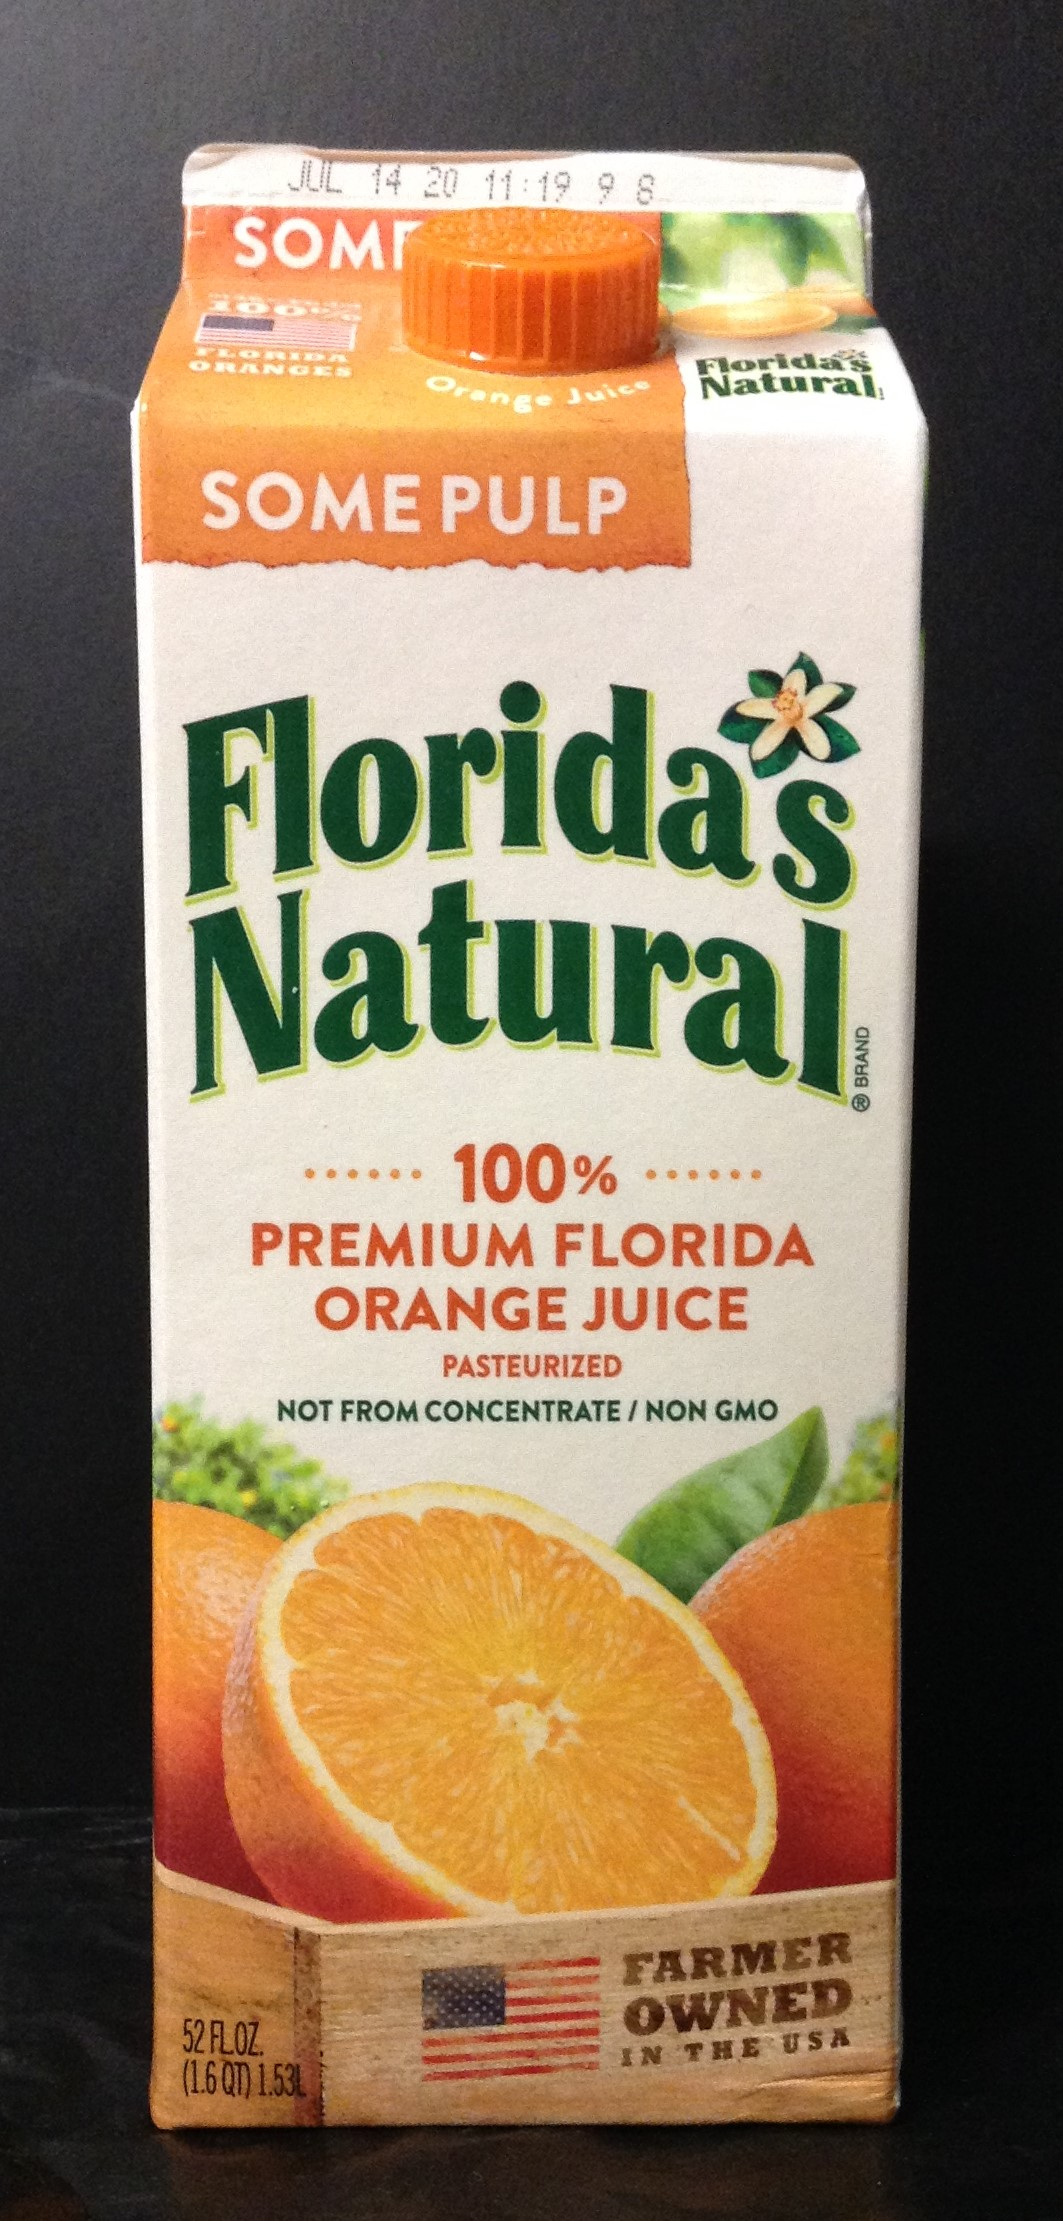 FLORIDA's NATURAL 100% Florida OJ -  Some Pulp